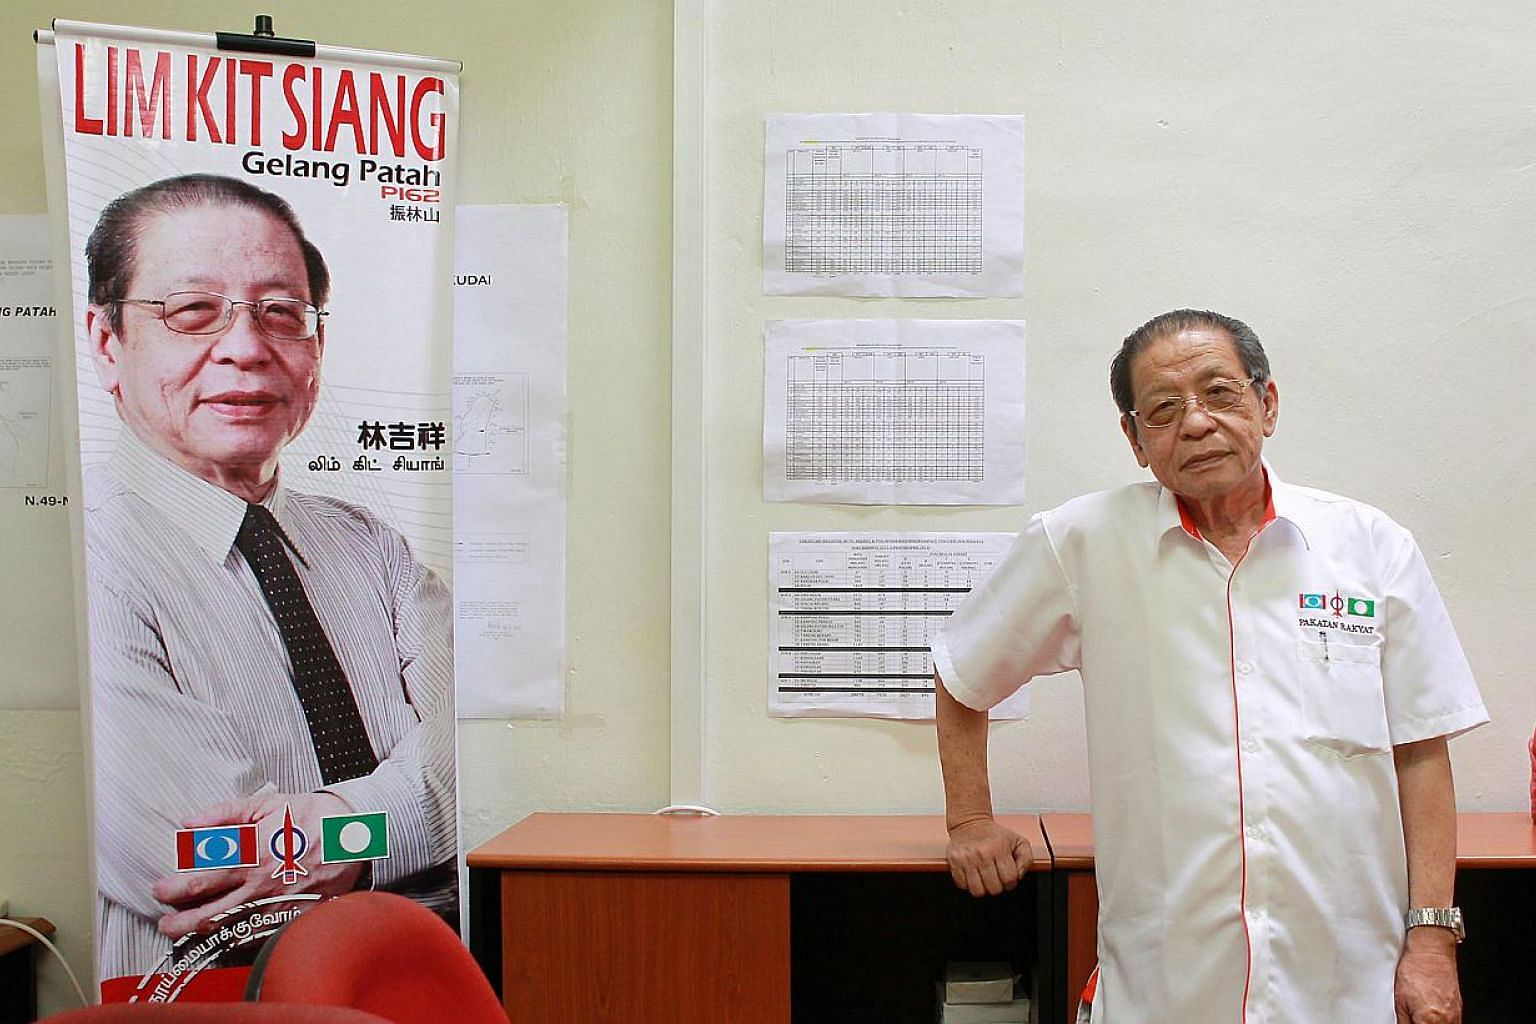 The Democratic Action Party's (DAP) made its decision to announce that the opposition Pakatan Rakyat (PR) alliance no longer exists because it wanted to recognise the current political reality, said party adviser Lim Kit Siang (above). -- ST FILE PHO